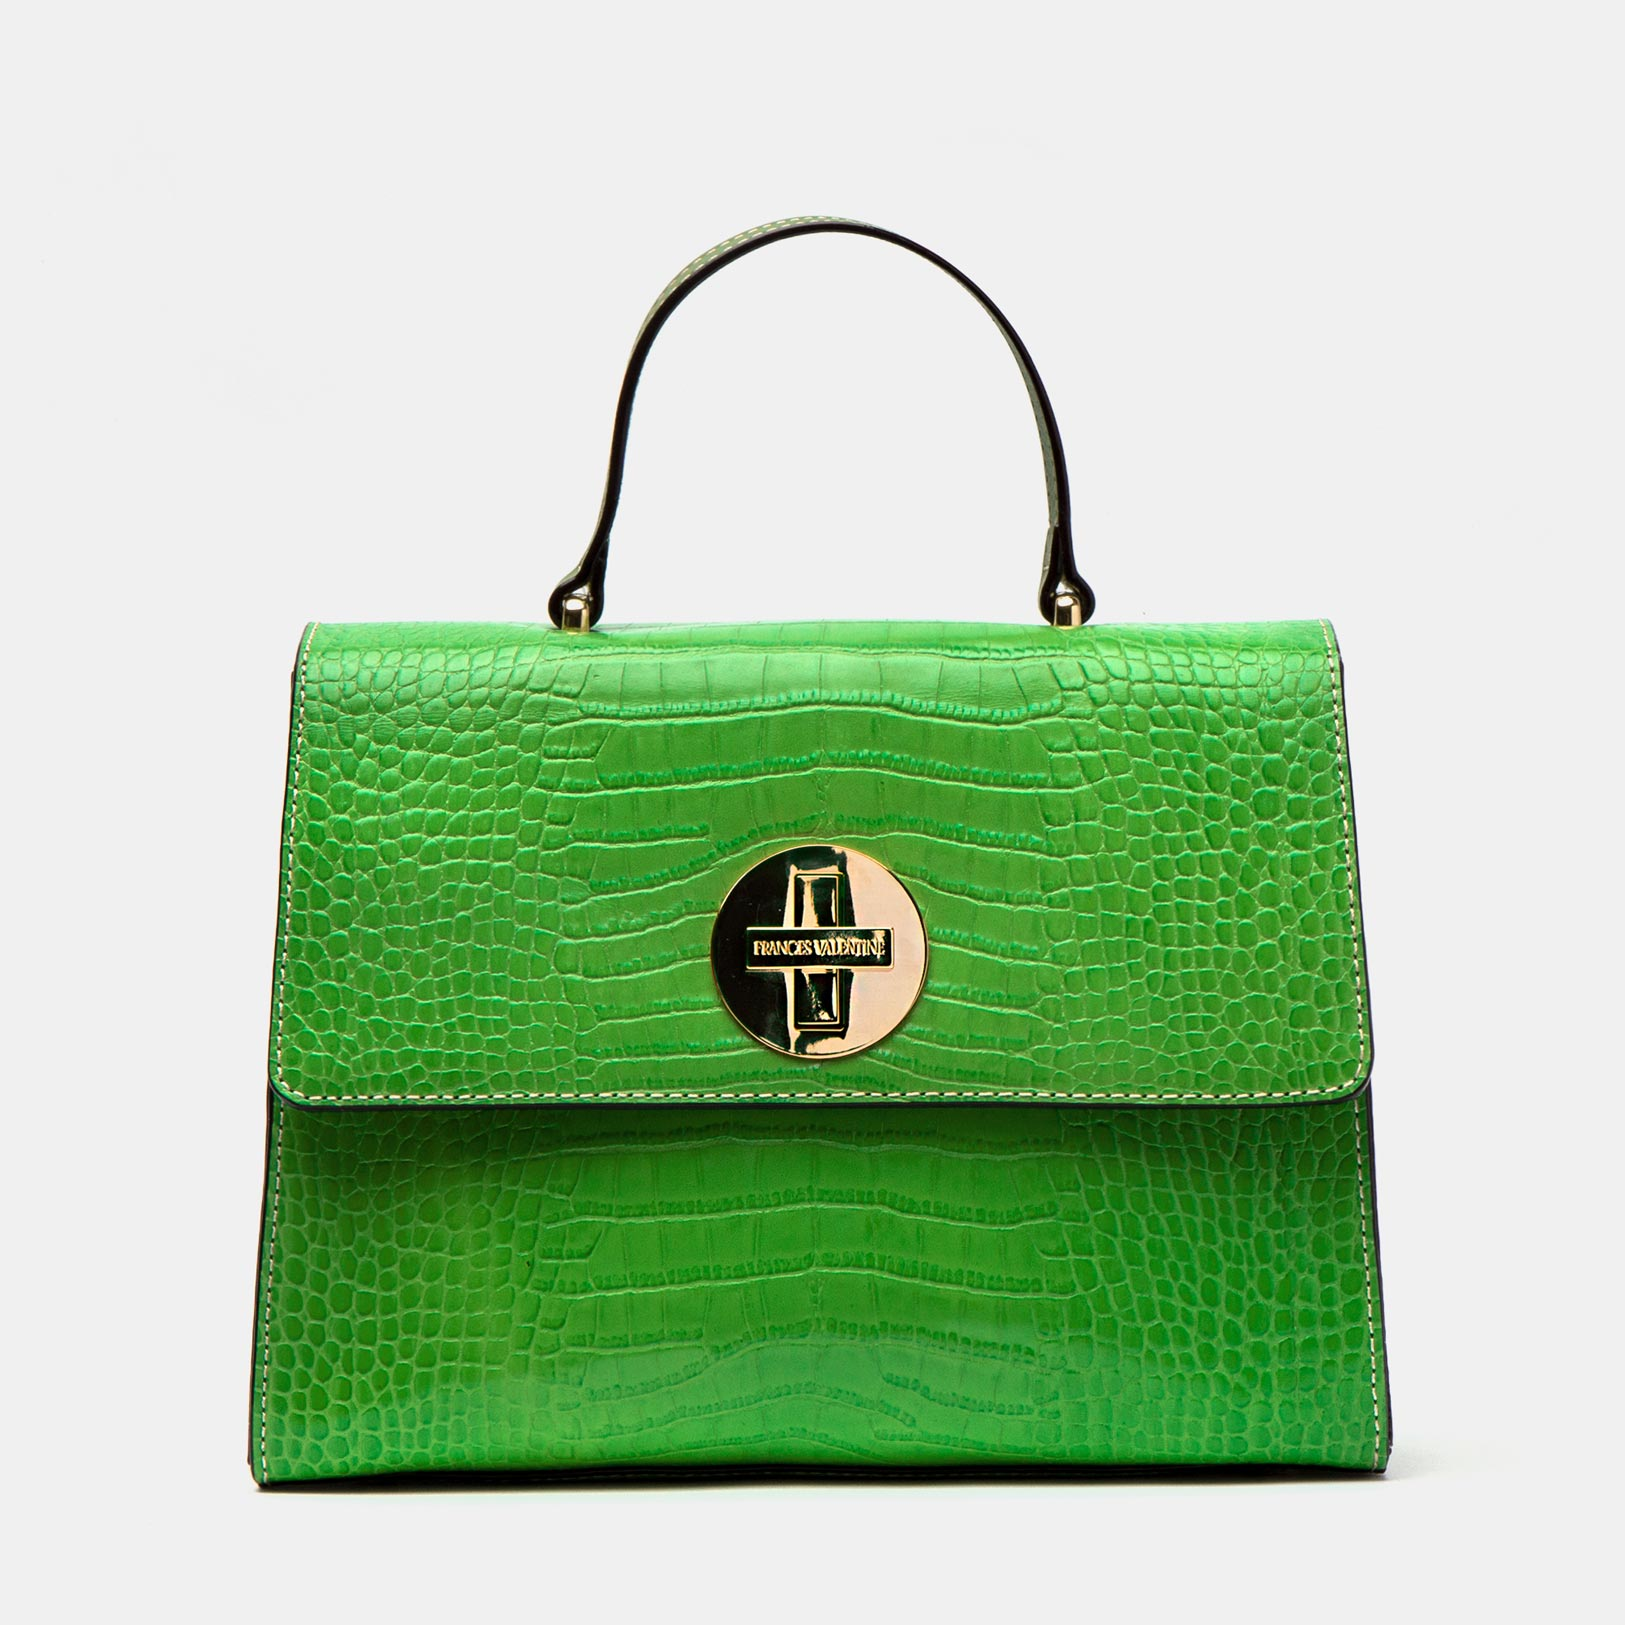 Holly Satchel Croc Embossed Leather Green - Frances Valentine